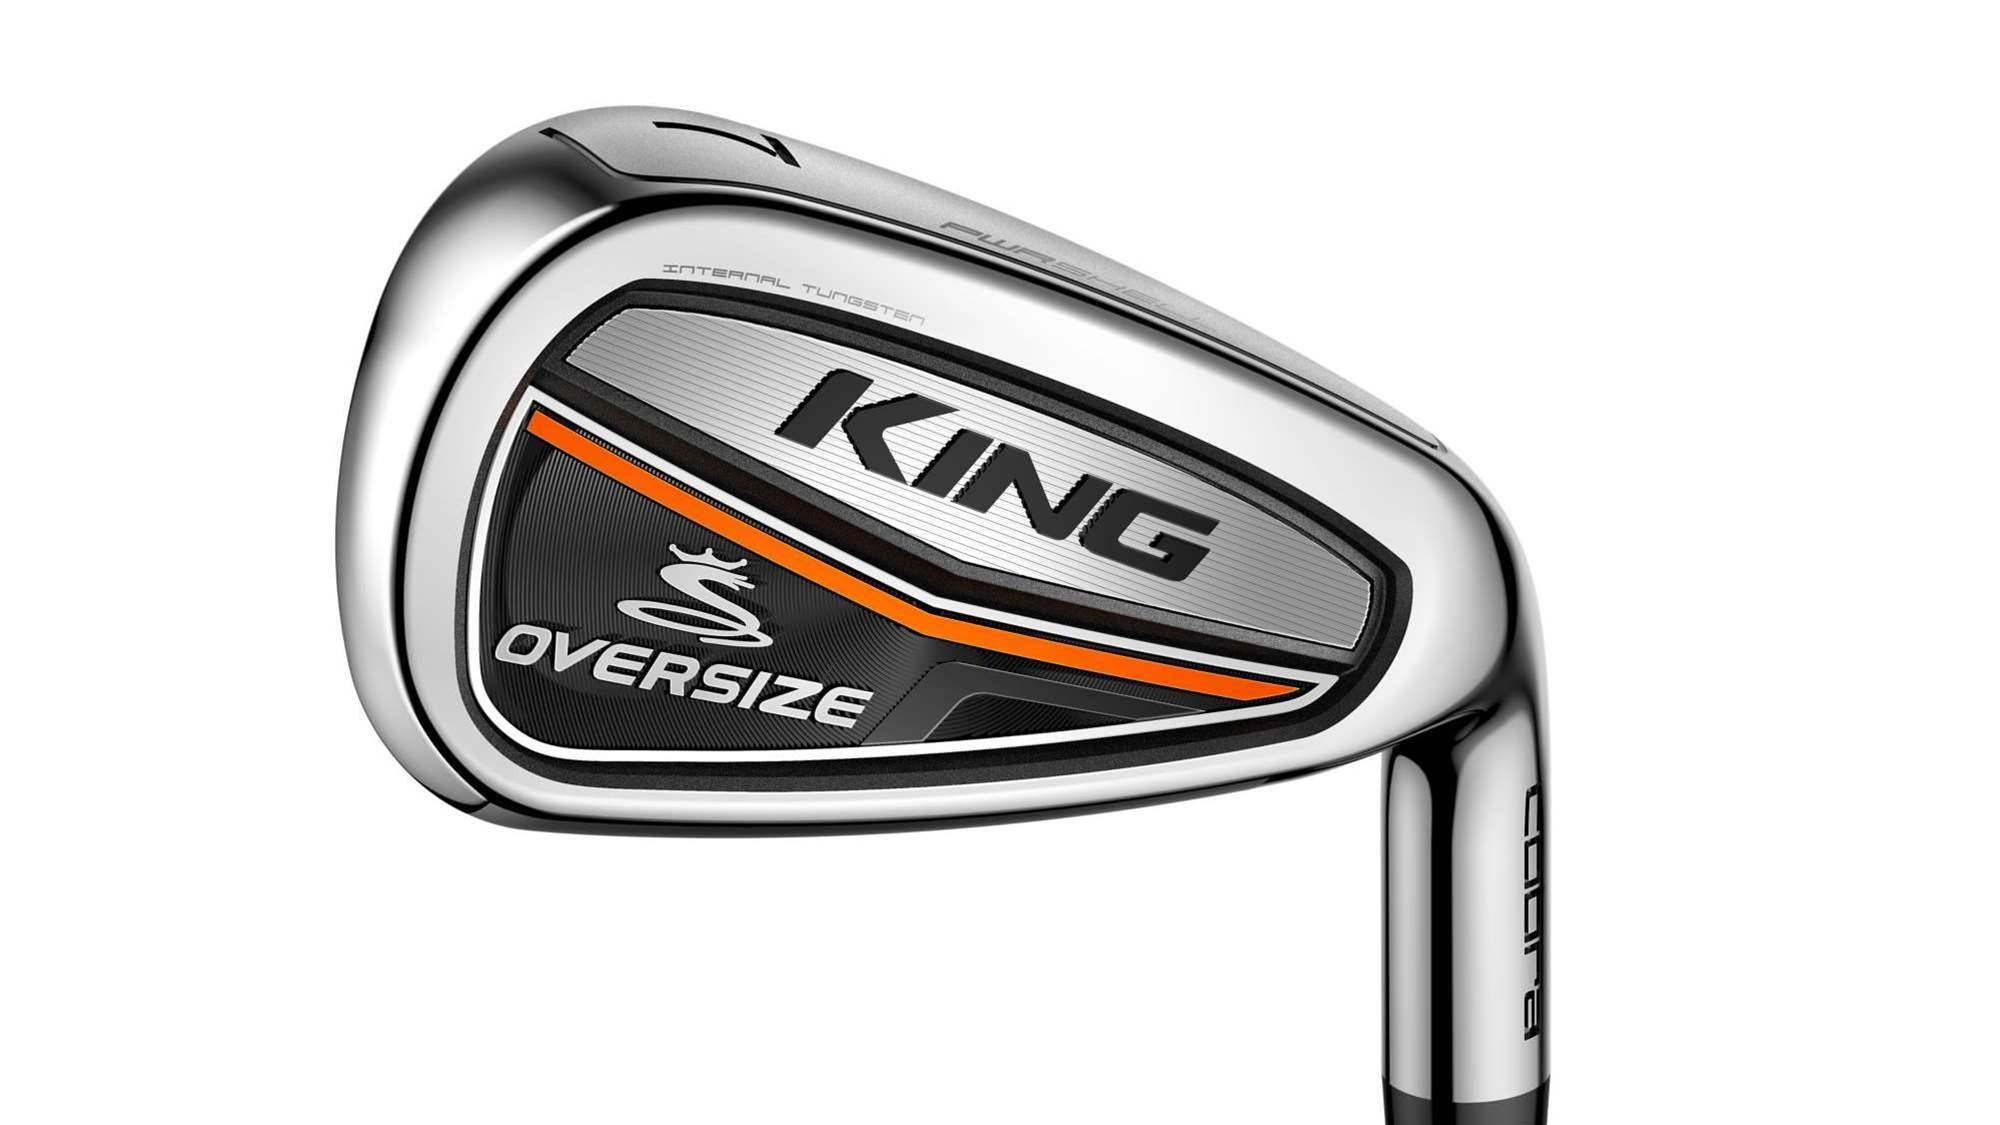 NEW GEAR: King Oversized irons